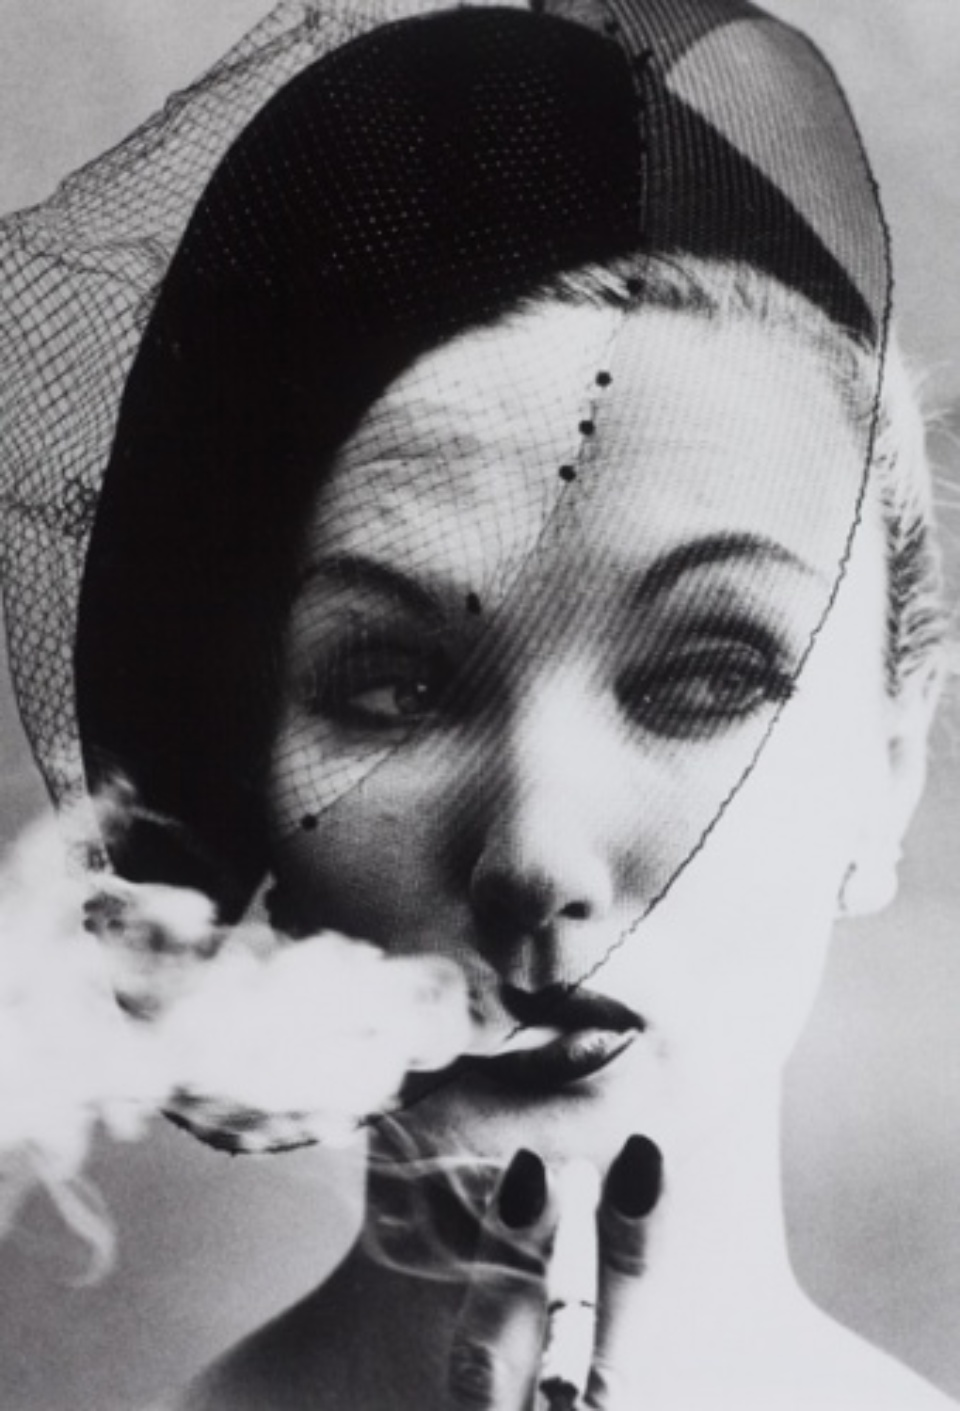 William Klein: Smoke and Veil (Vogue) Paris, 1958 Gelatin silver print, printed later Signed, titled, and dated on verso 50 x 40 cm